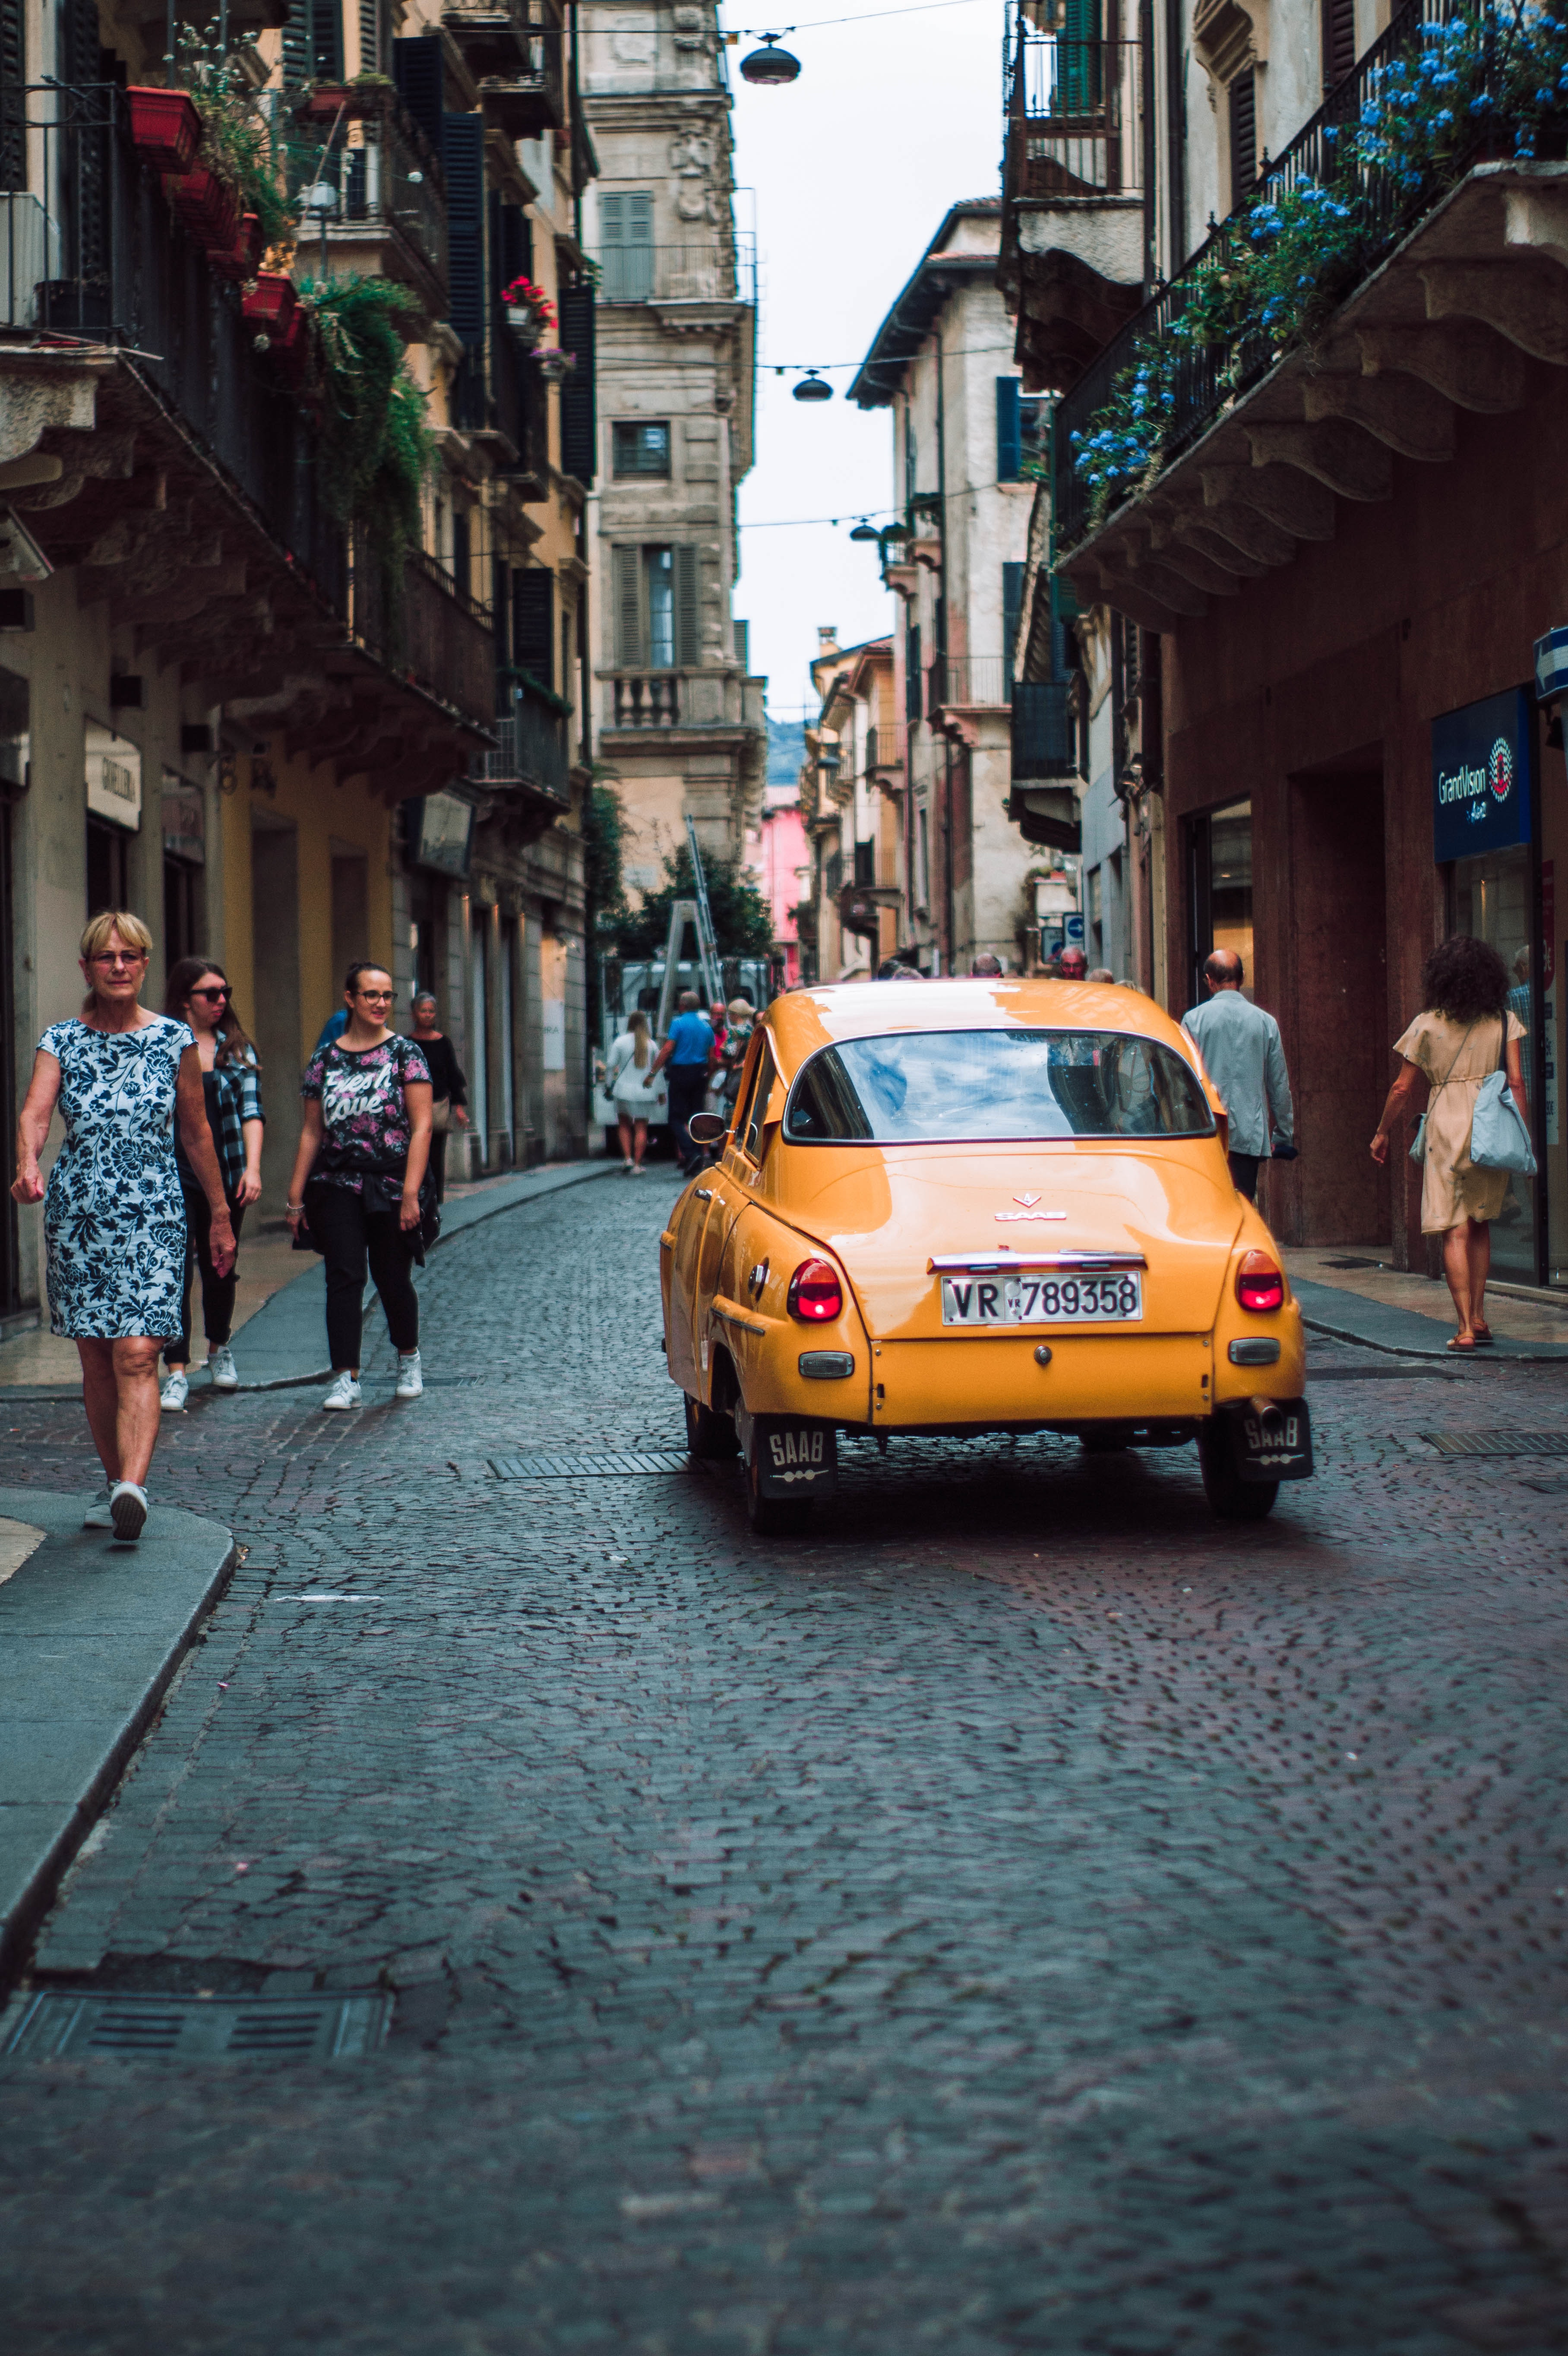 Car driving down cobble stone street in Italy.